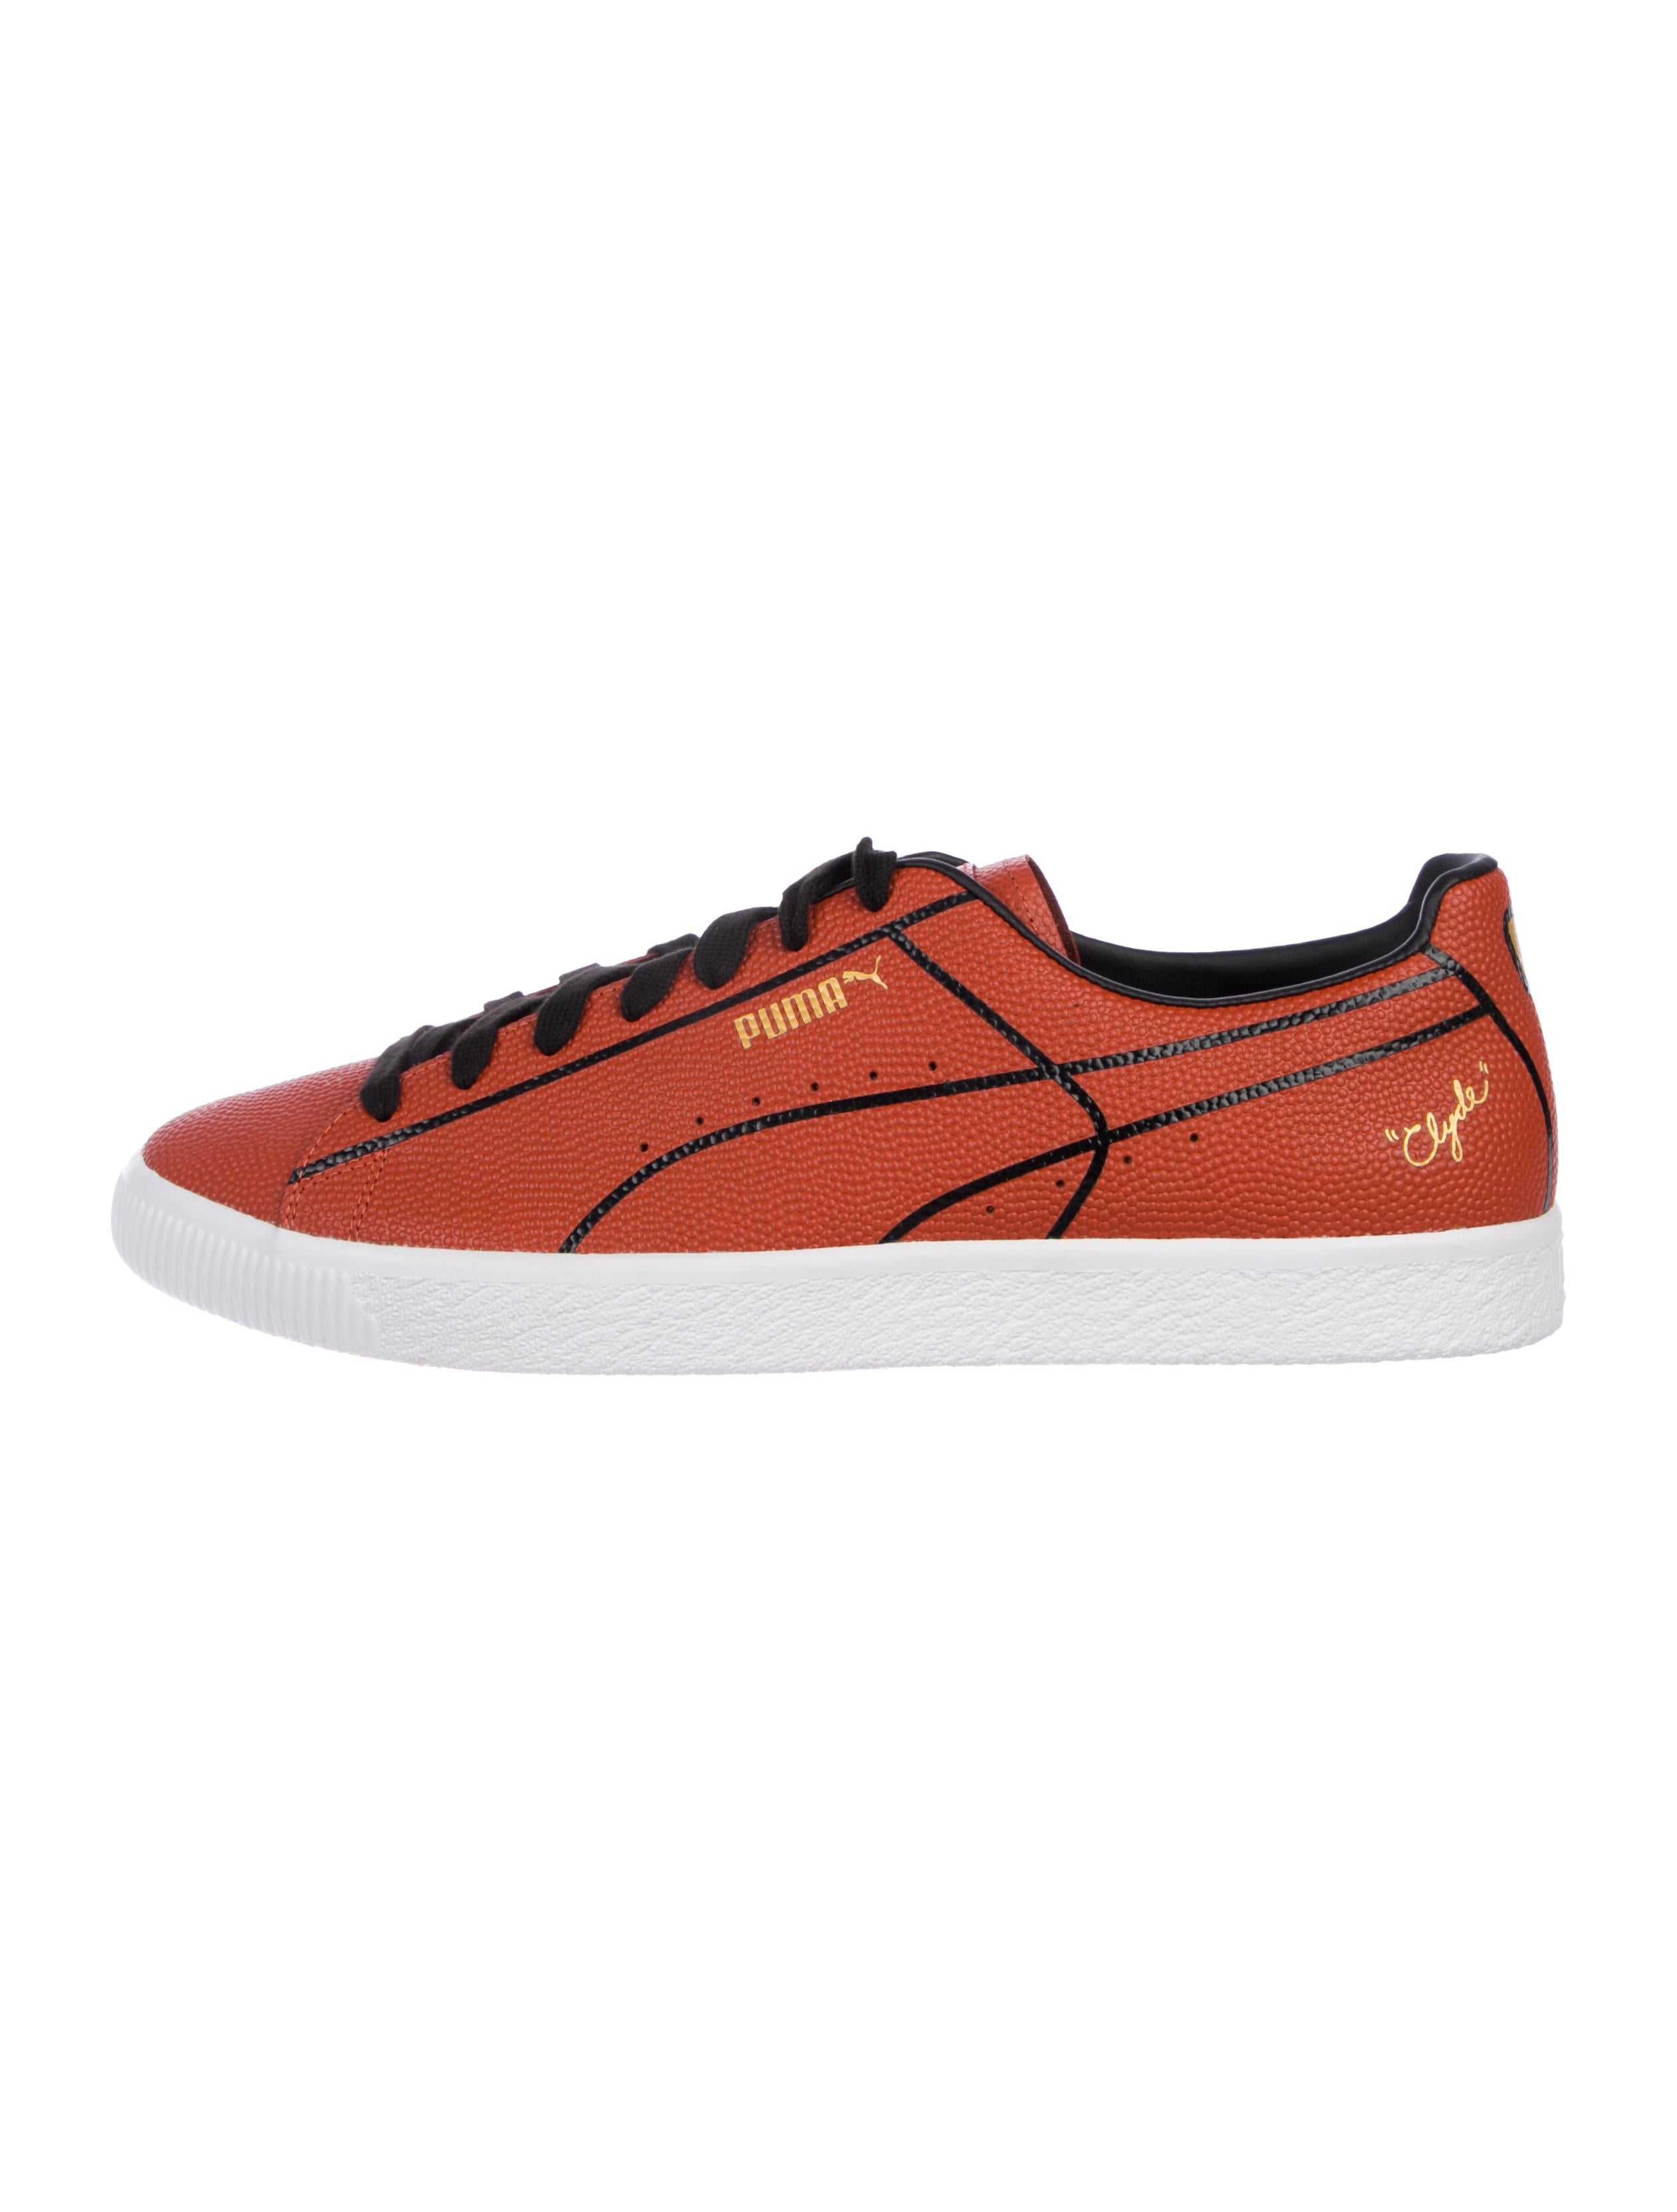 Puma Clyde BBall Madness Sneakers w